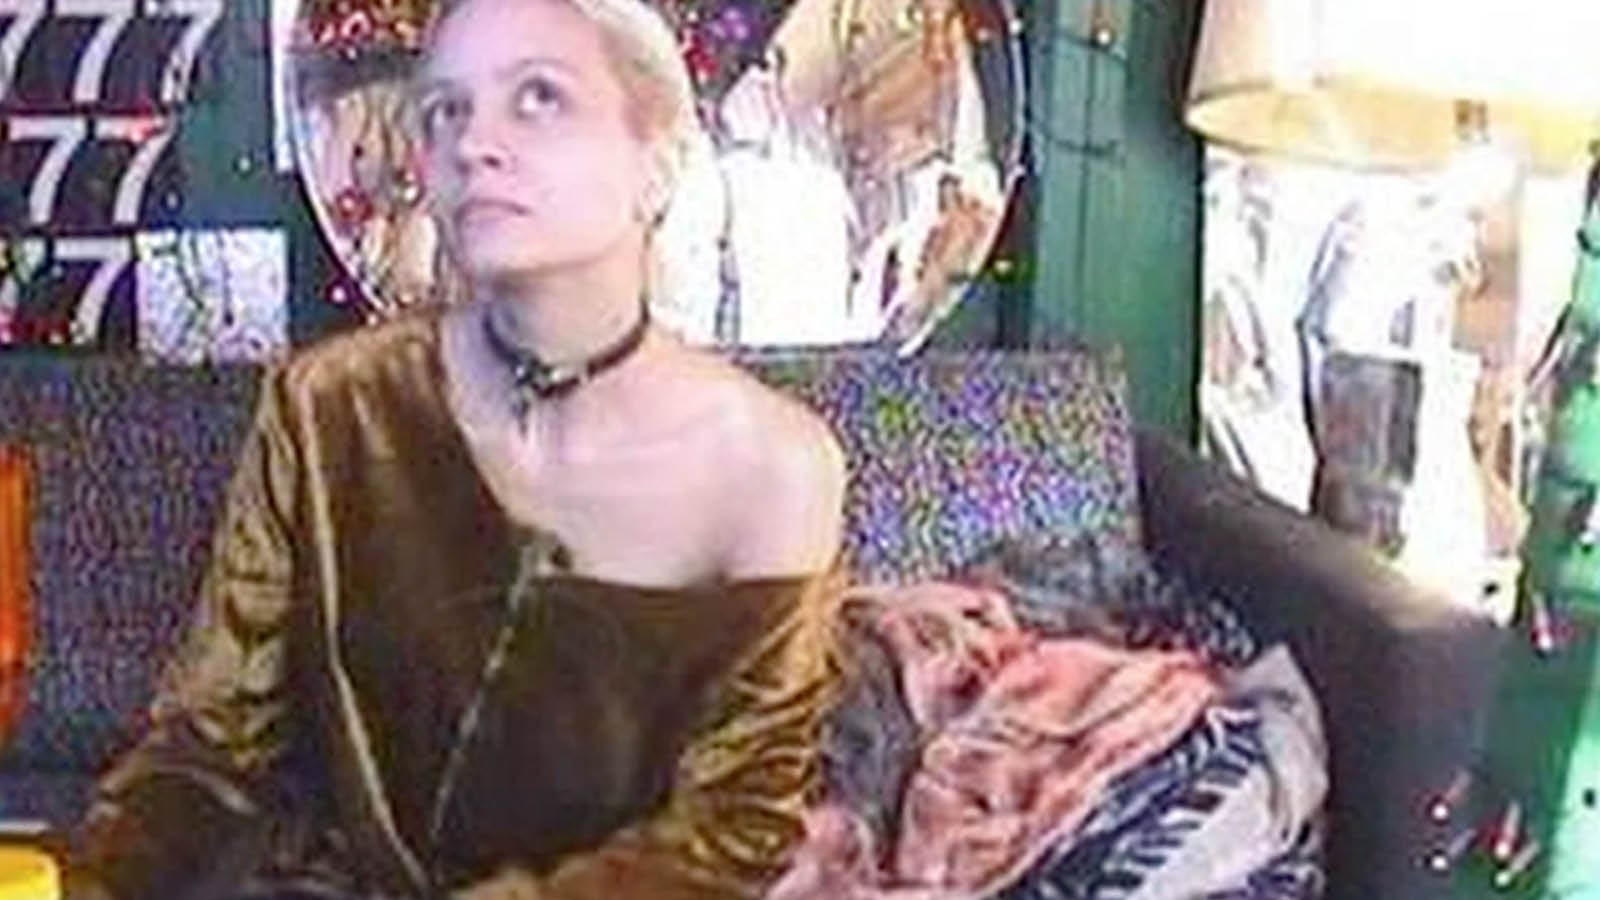 In 1998 this webcam woman was the most famous person online